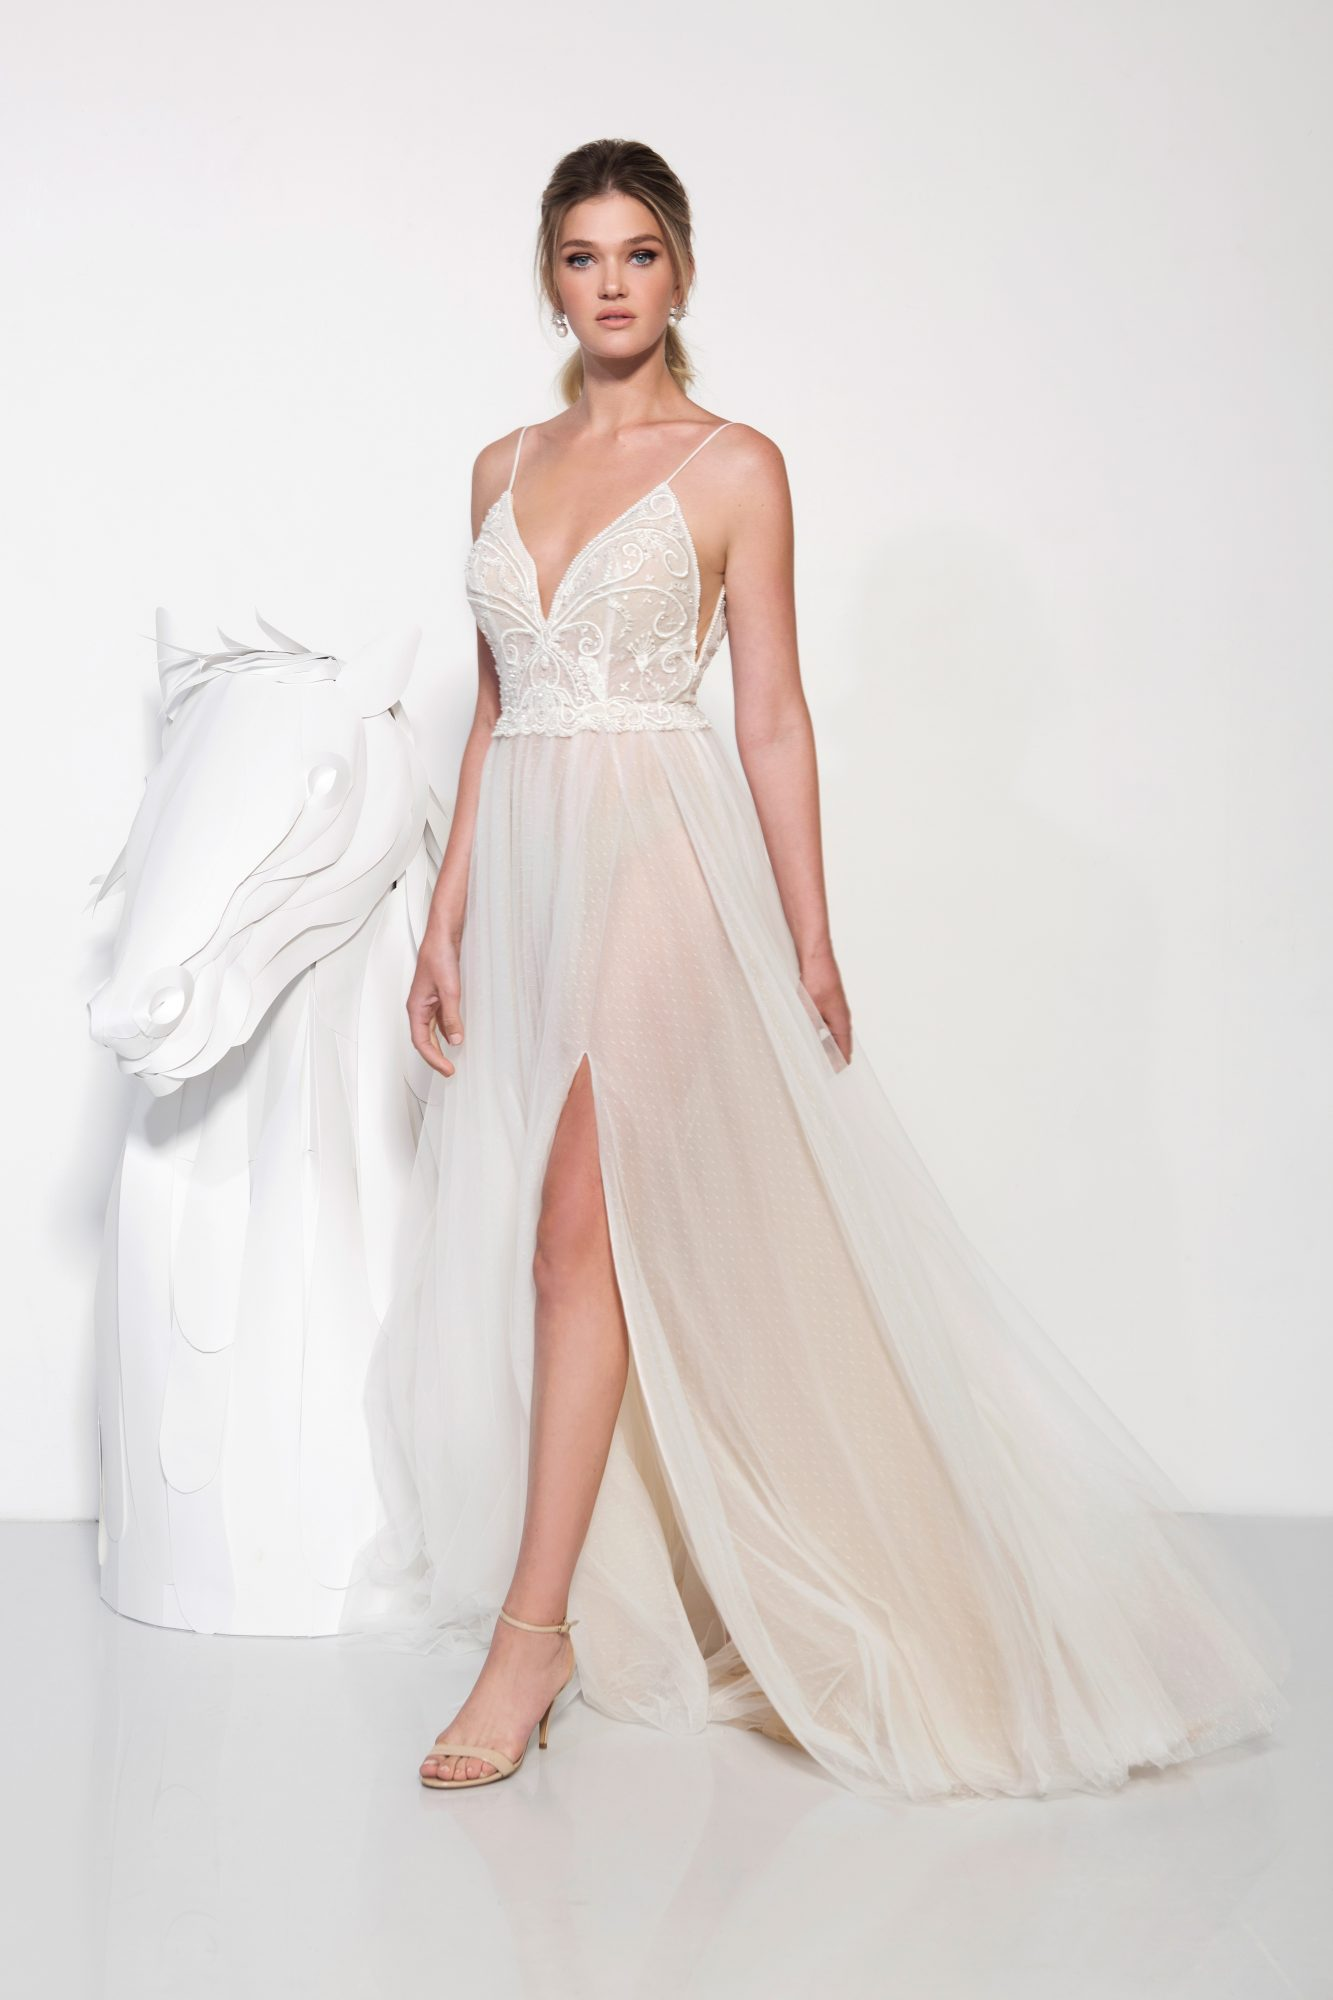 lavish by yaniv persy wedding dress spring 2019 spaghetti straps a-line deep v